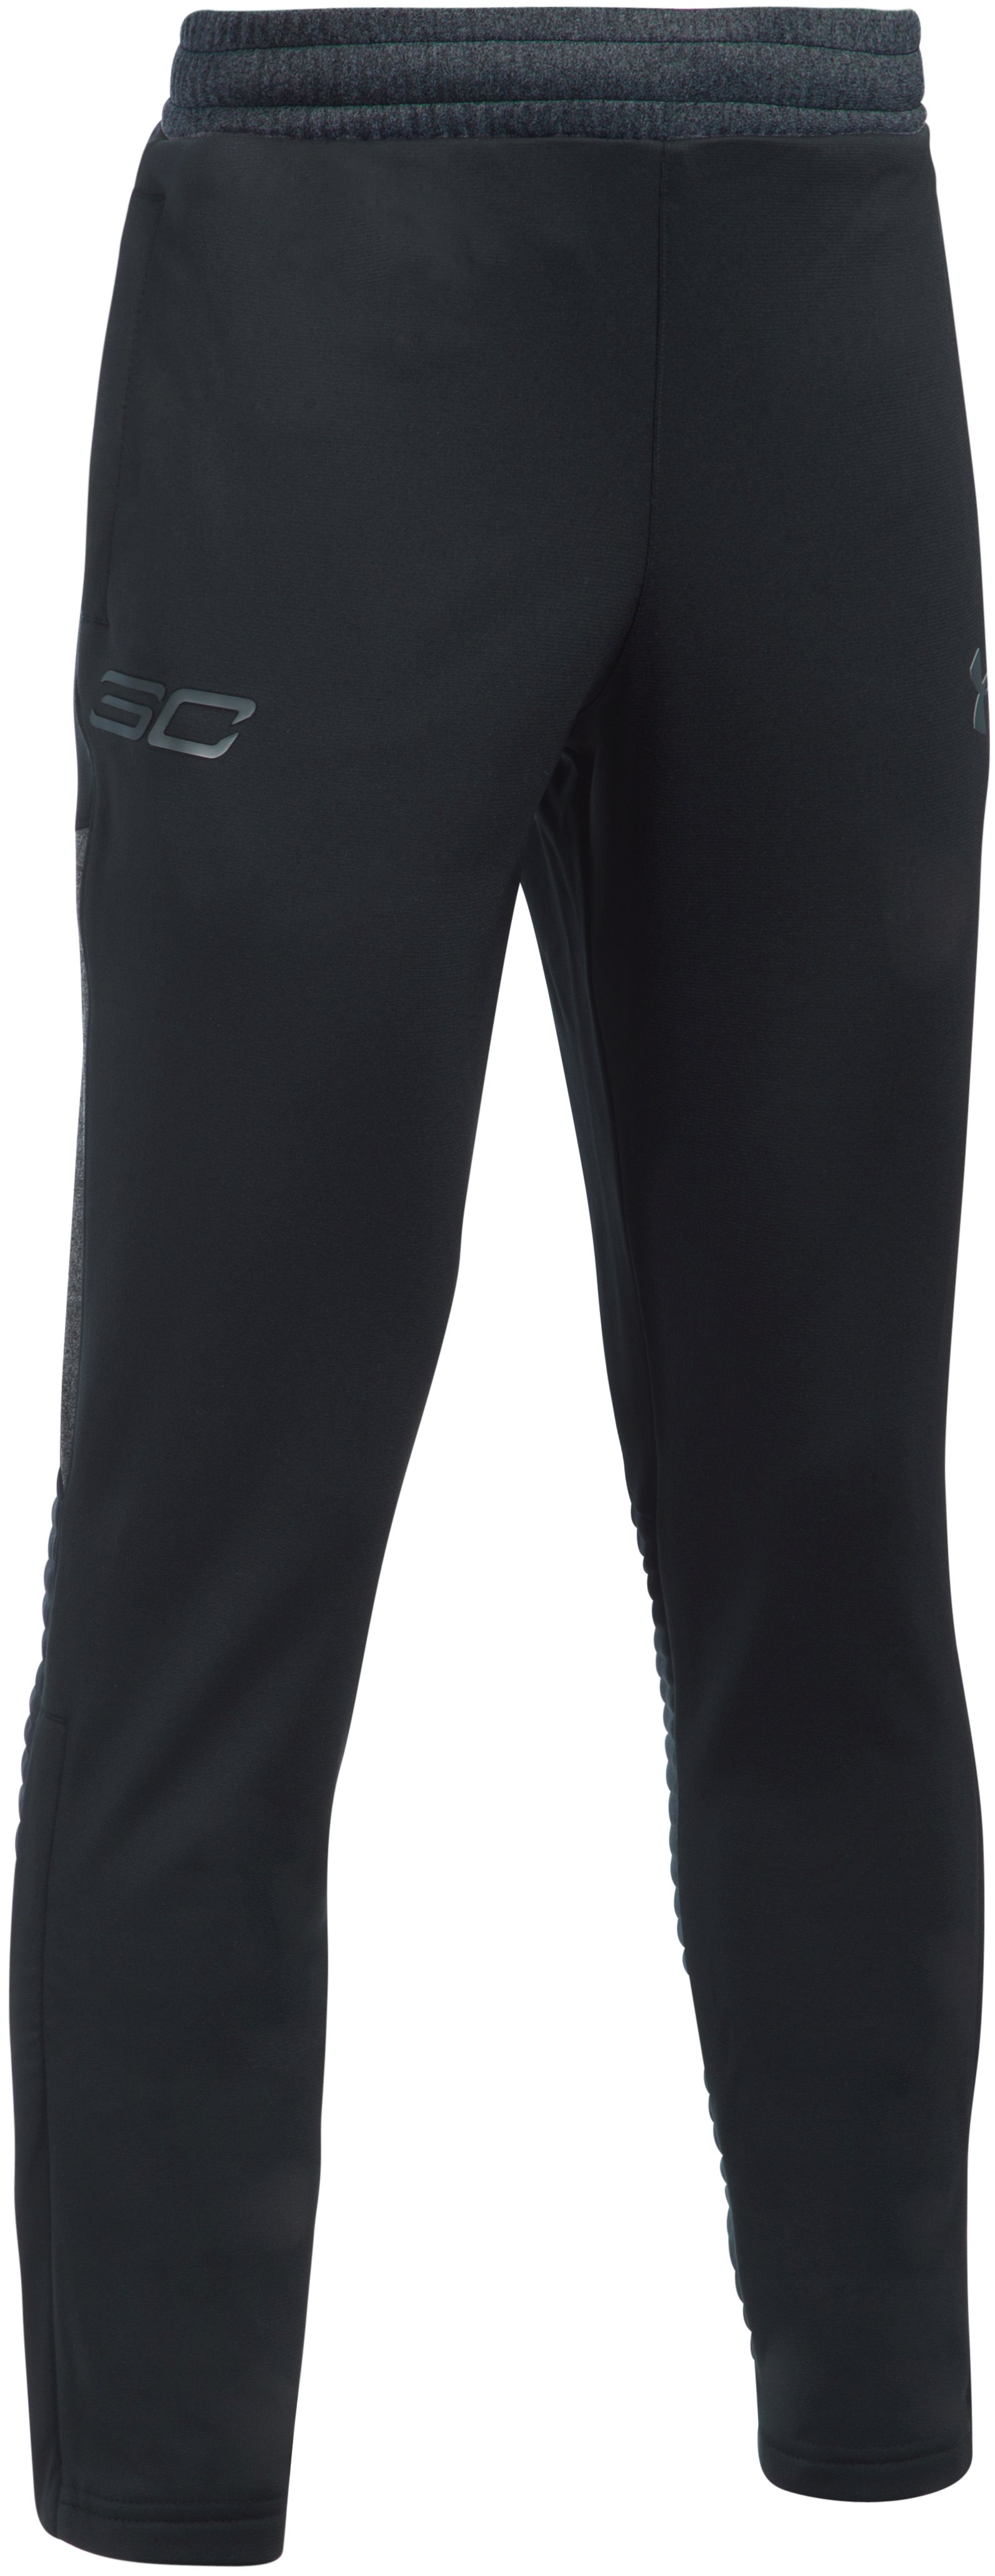 Boys' SC30 Performance Pants, Black , undefined